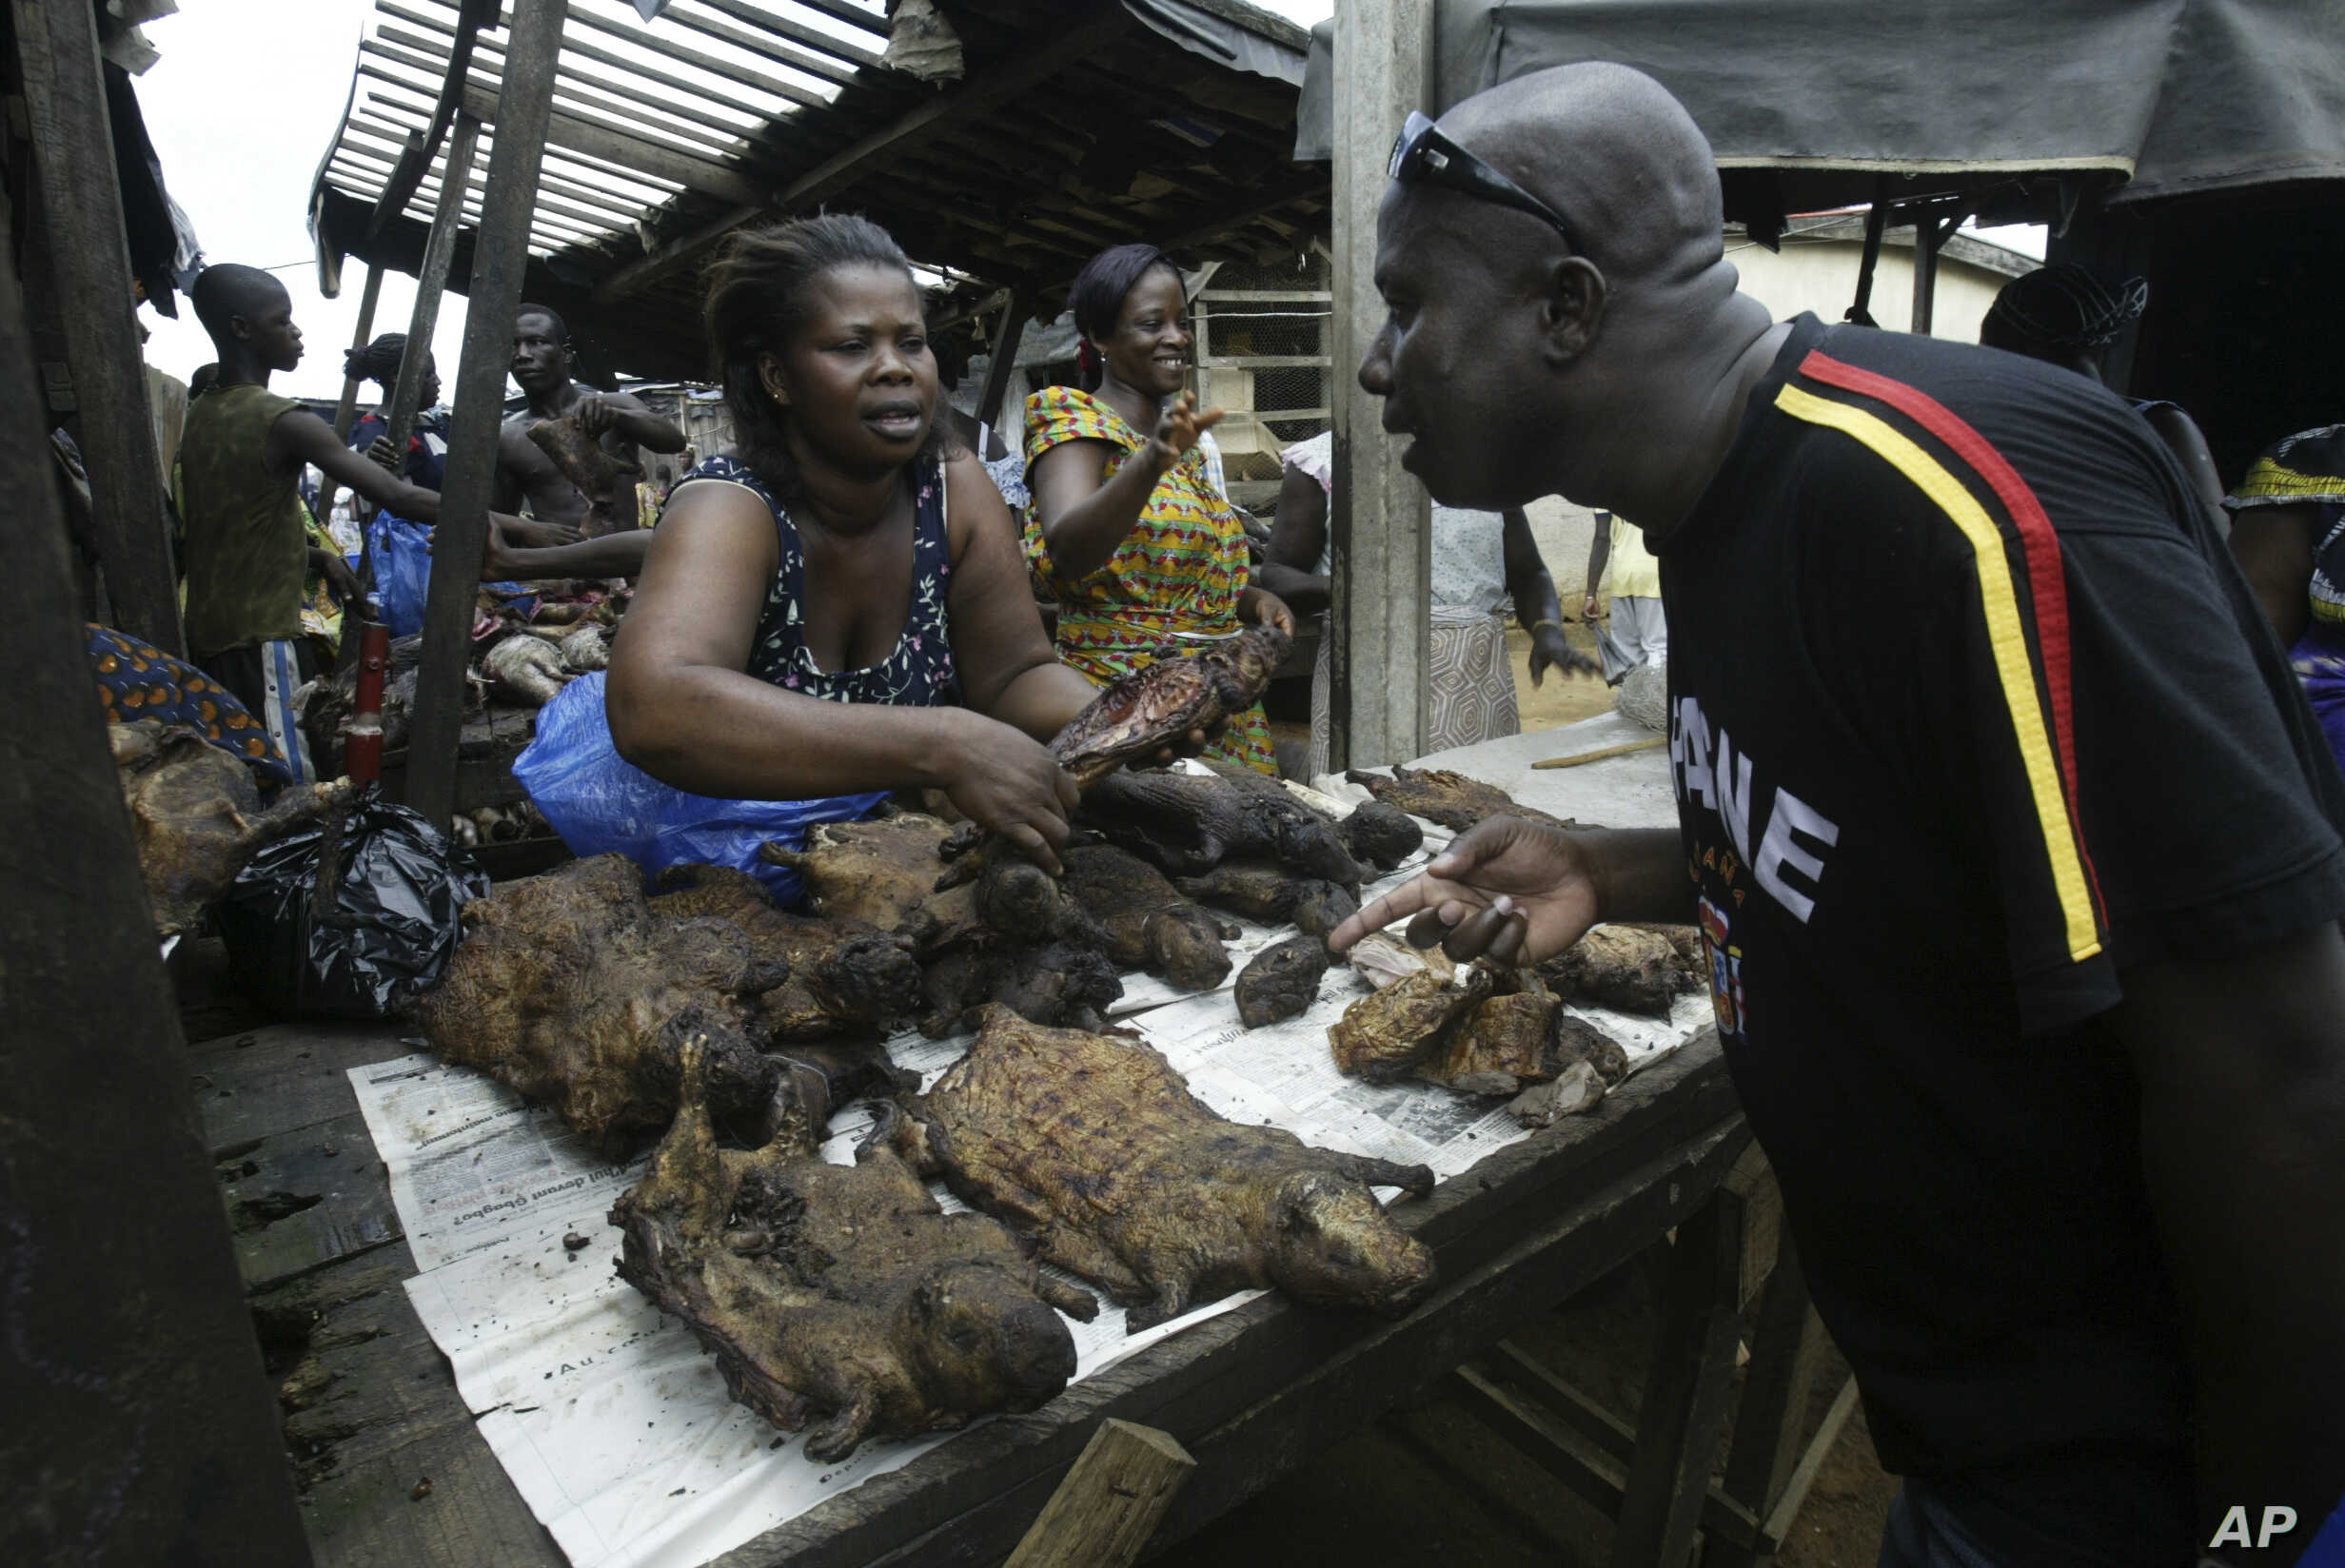 A man buys bush meat at a market in Yopougon, Abidjan May 27, 2006. Researchers say the AIDS virus originated in wild apes in Cameroon and then spread to hunters who killed the animals and marketed the meat. (Photo Luc Gnago / REUTERS)